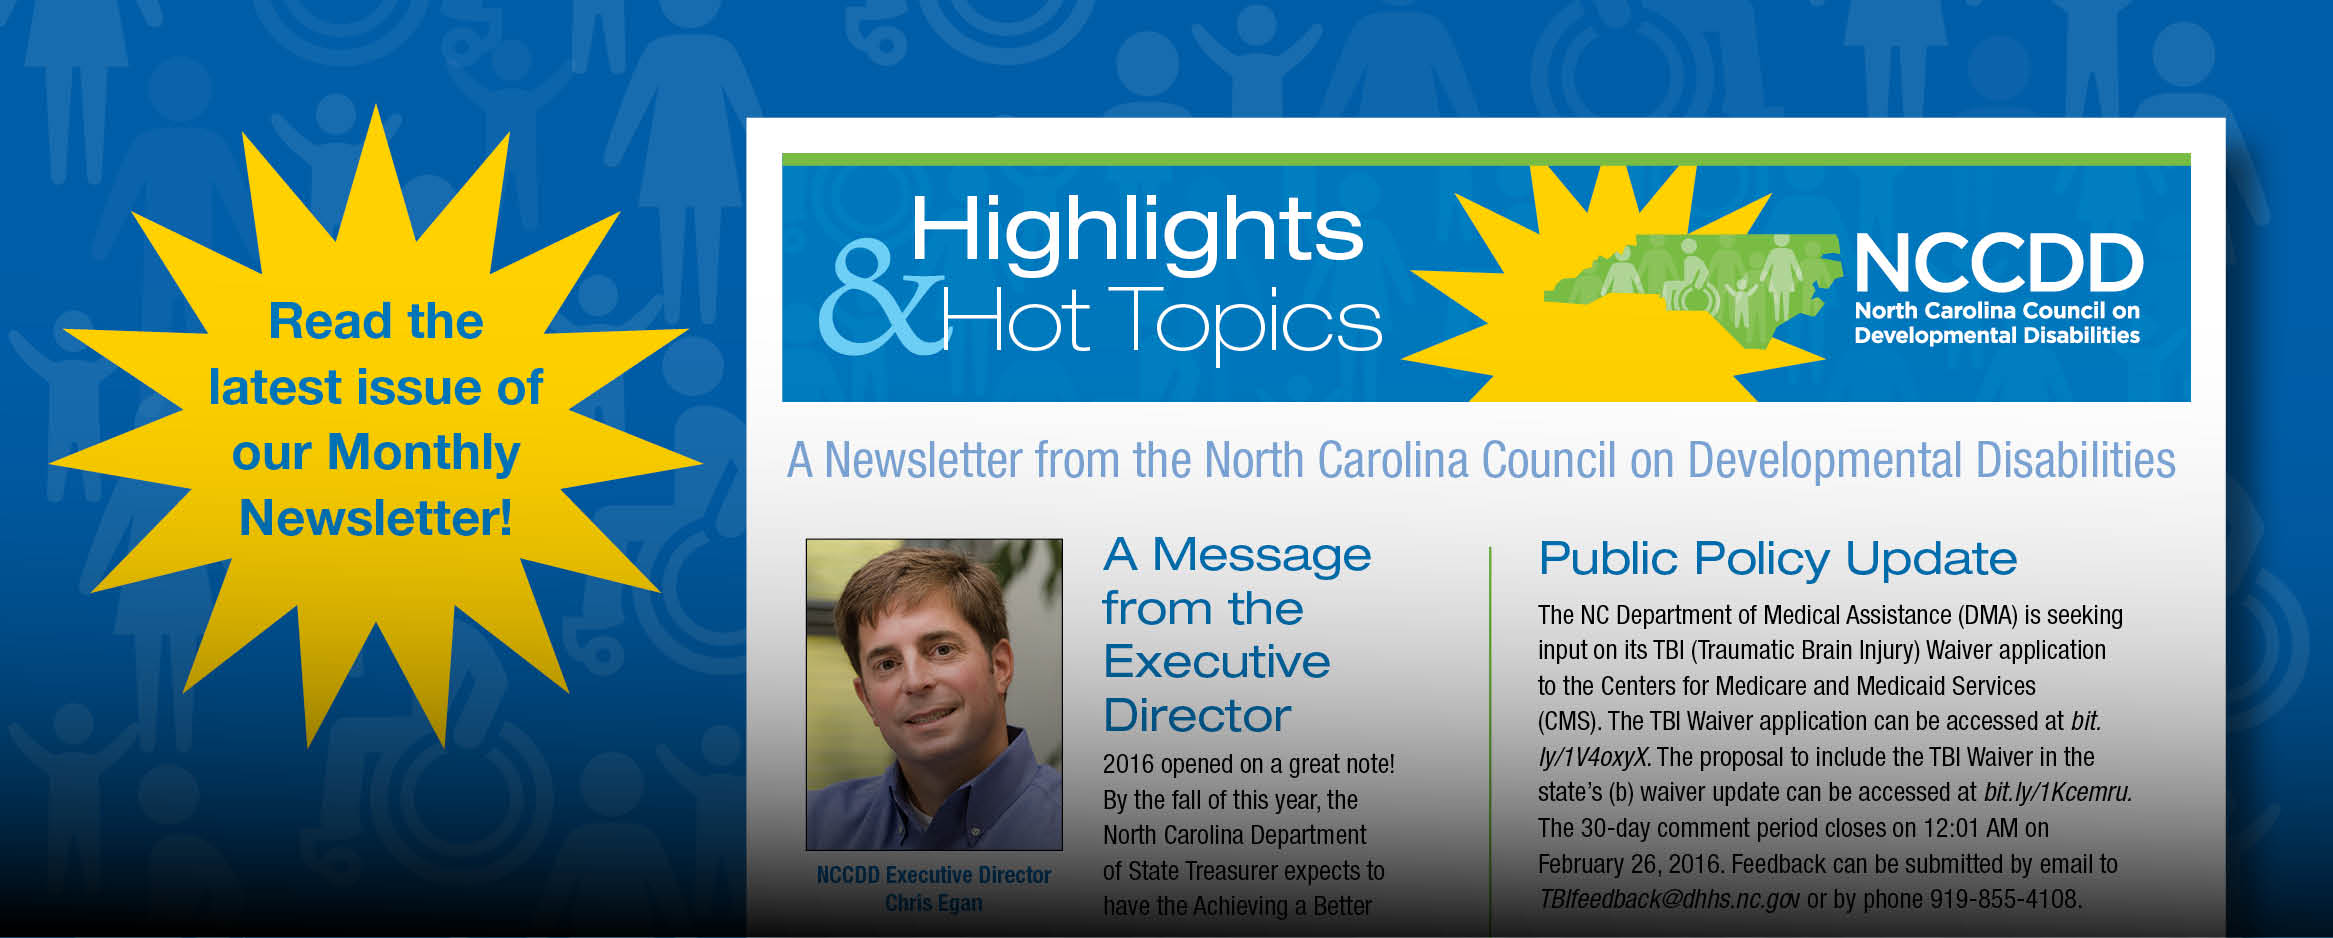 Read the latest issue of our Monthly Newsletter - Highlights & Hot Topics!